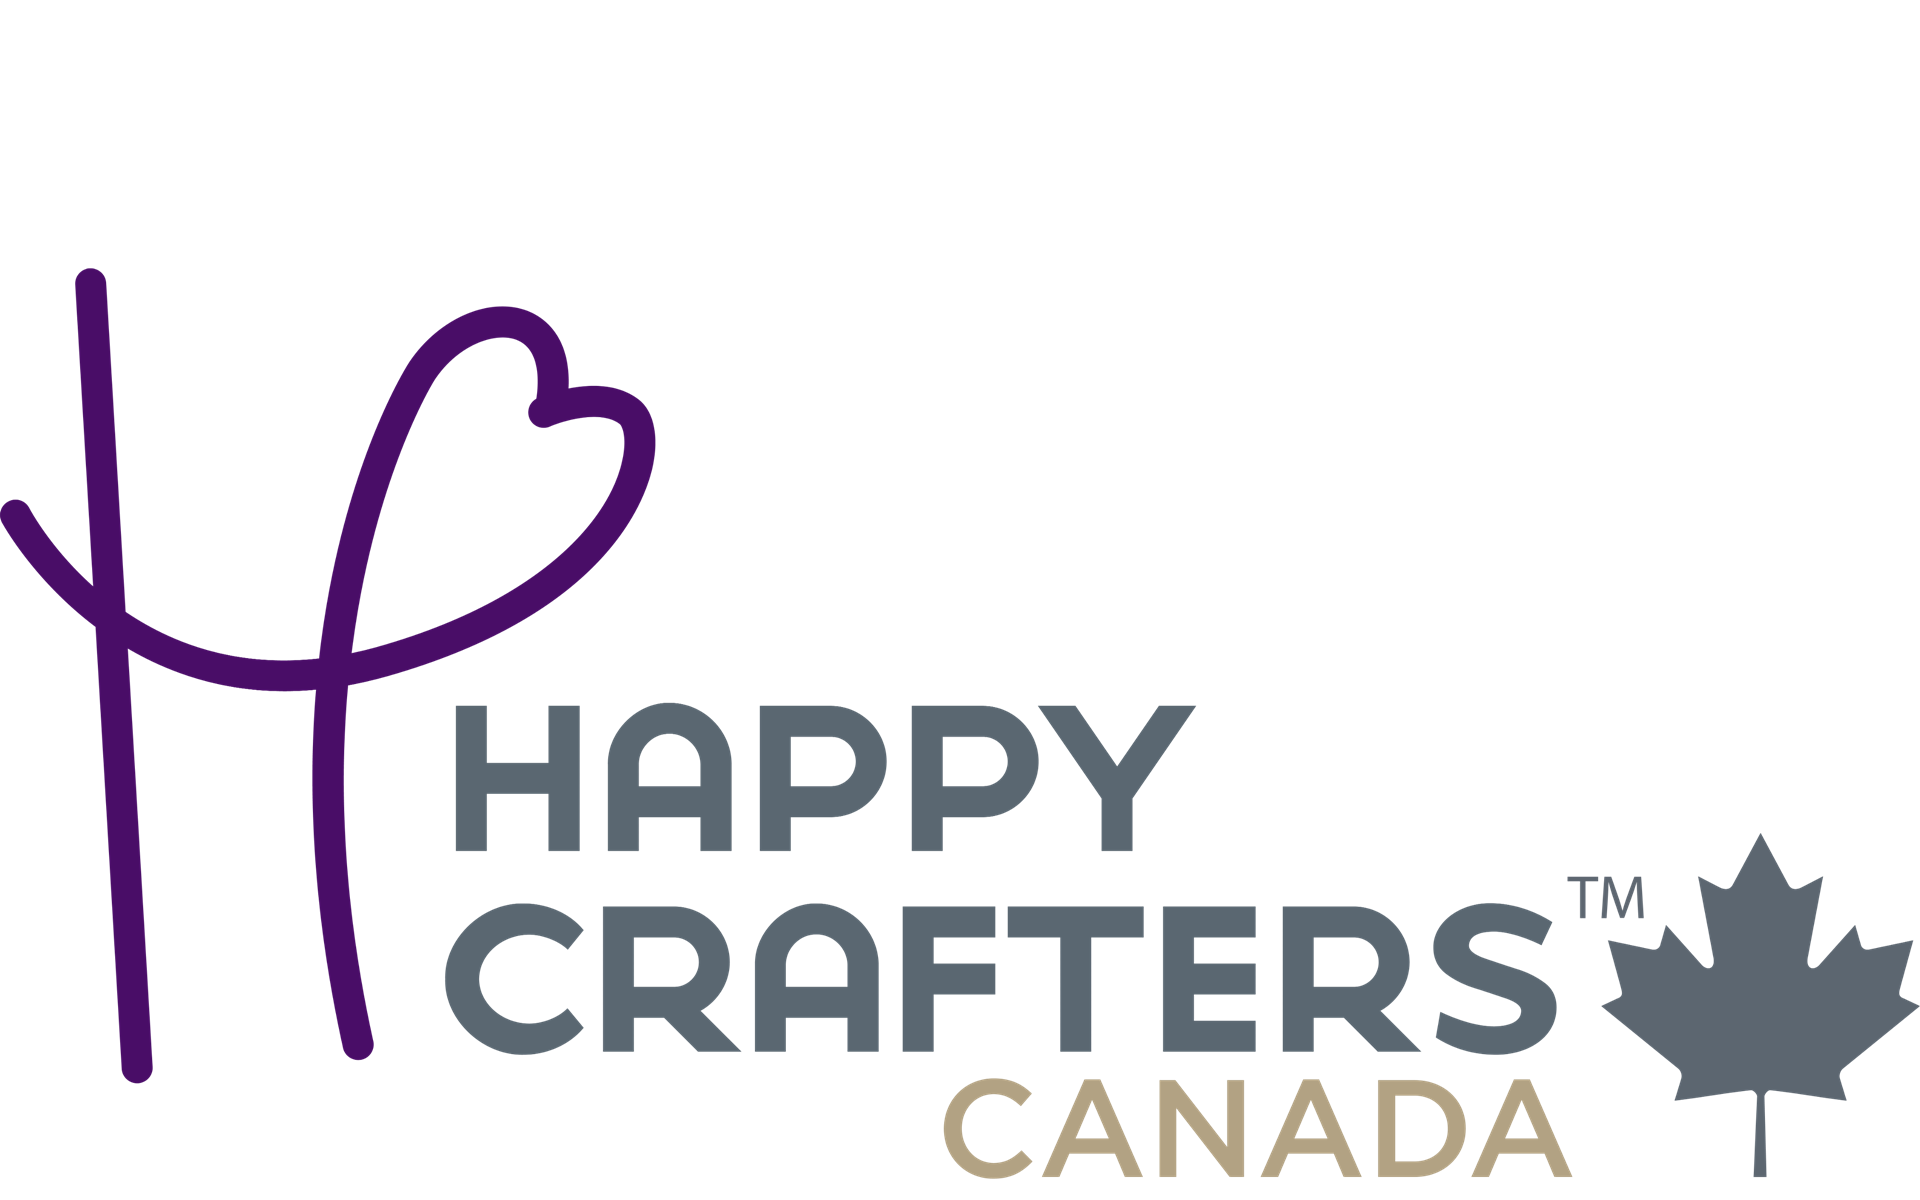 Happy Crafters Canada